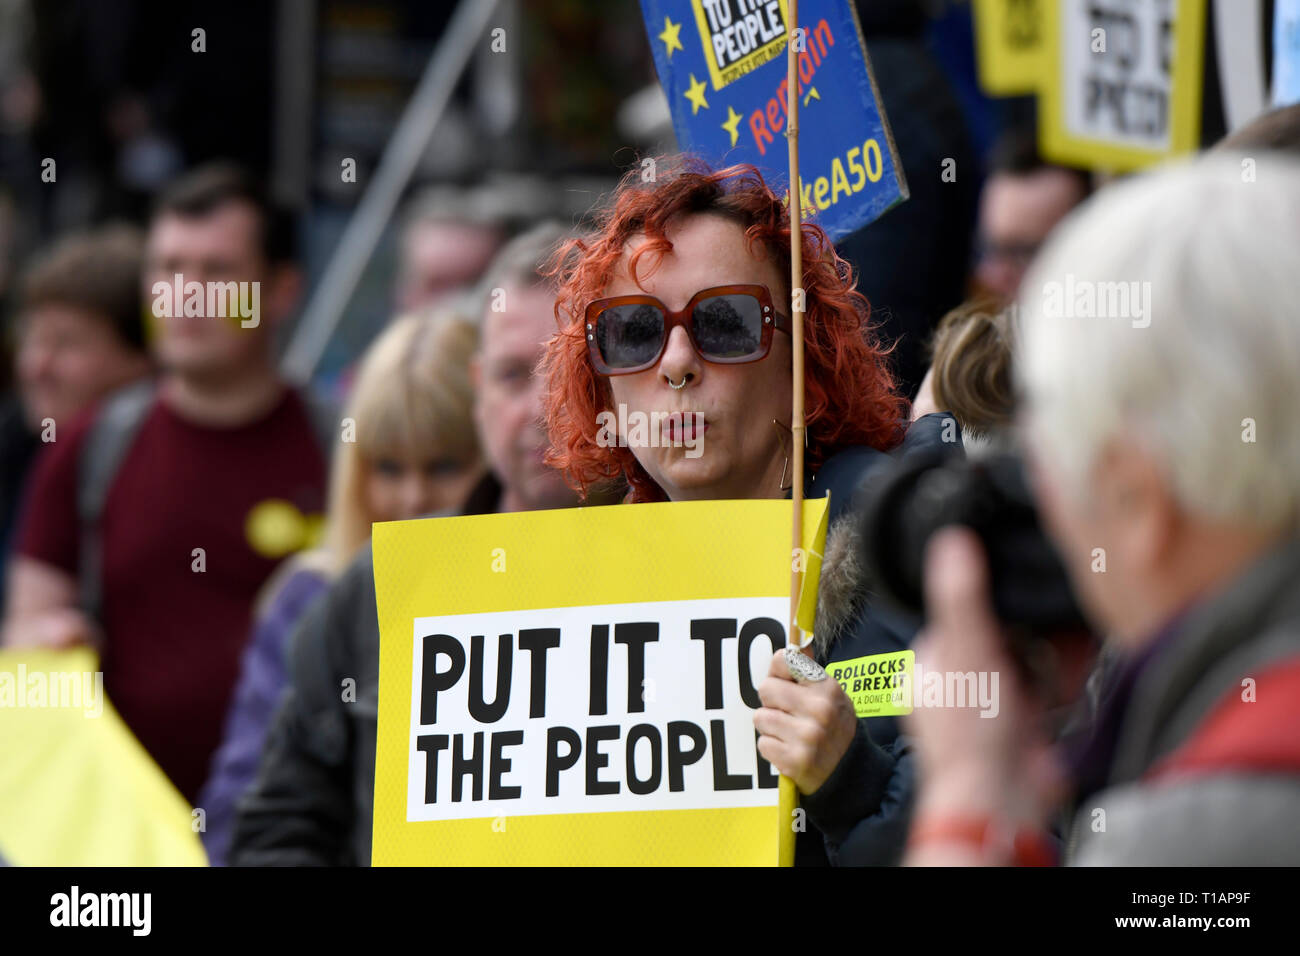 A protester seen holding a placard that says 'Put it to the people' during the march. Over a million people marched peacefully in central London in favor of a second referendum. People gathered at Park Lane to rally at Parliament Square to demonstrate against the Tory government's Brexit negotiations, and to demand a second vote on the final Brexit deal. March was organized by The Peoples Vote. - Stock Image